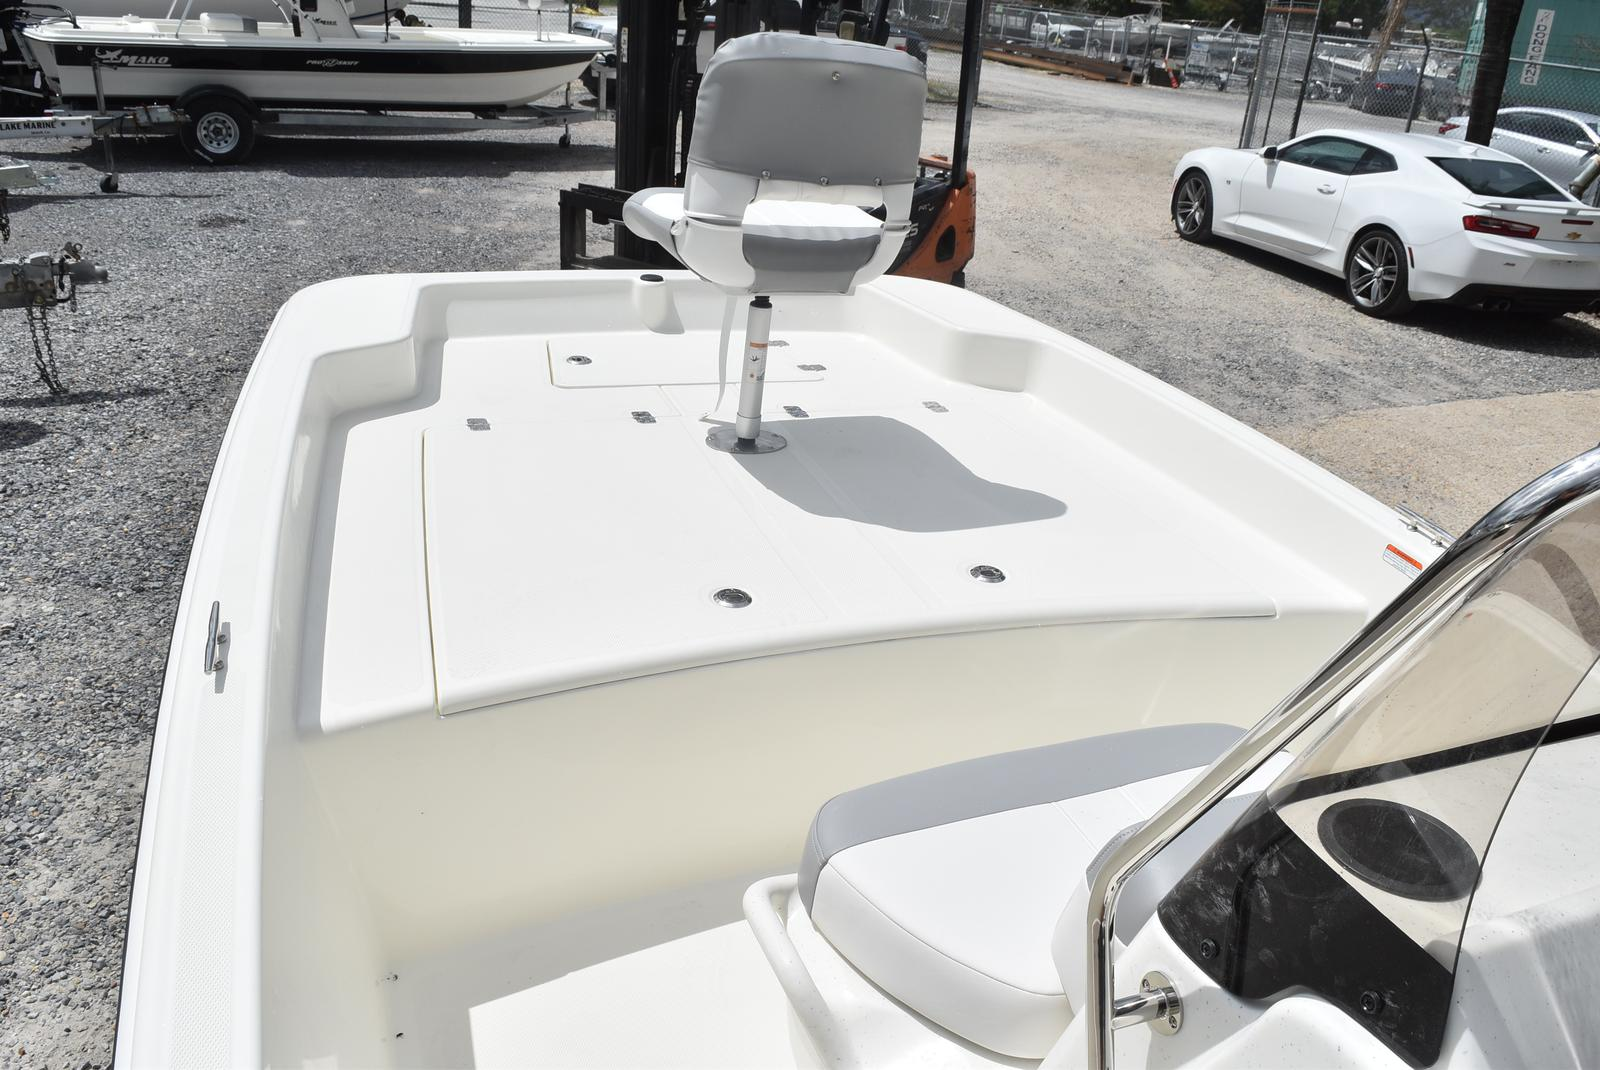 2020 Mako boat for sale, model of the boat is Pro Skiff 17, 75 ELPT & Image # 452 of 702